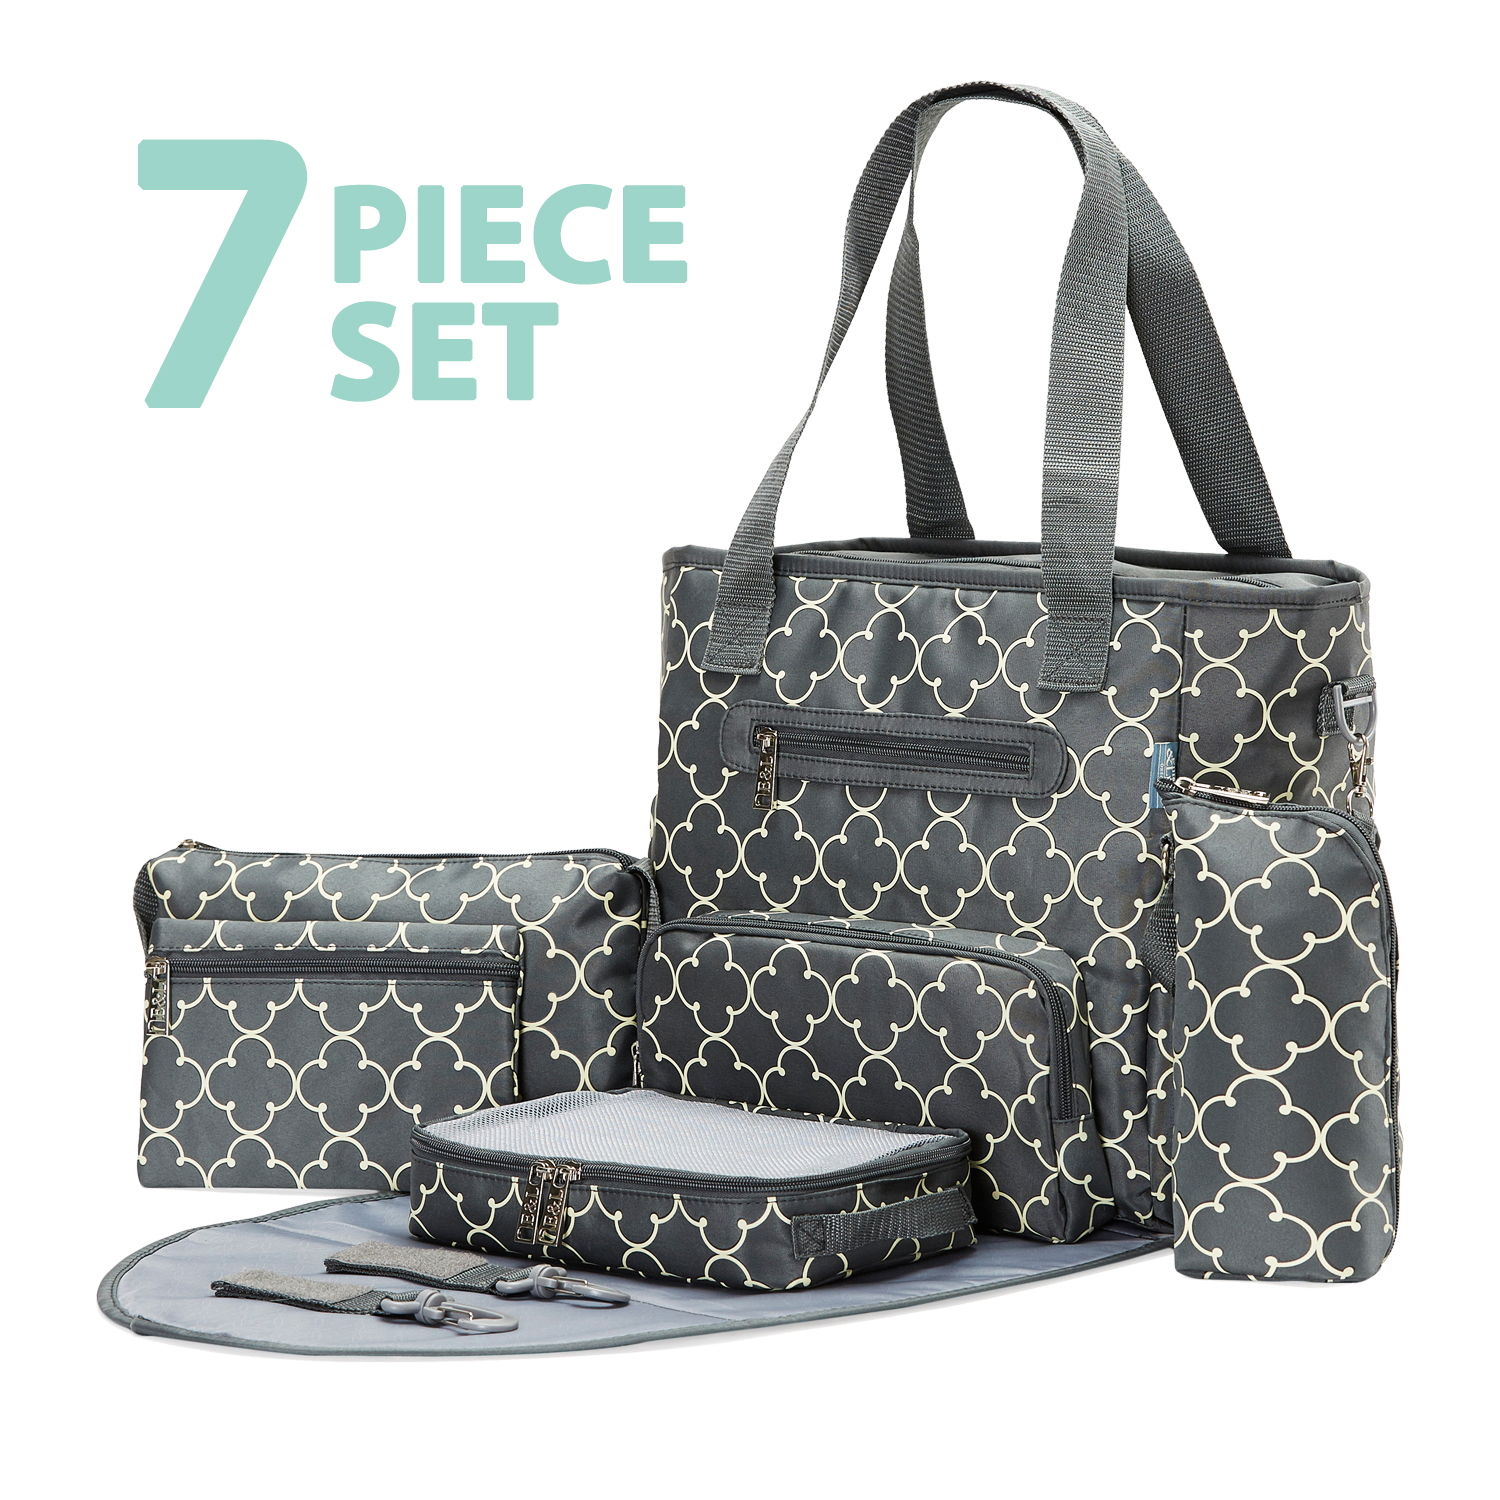 Soho Collections, Large Tote Diaper Bag, 7 Piece Complete Set with Stroller Straps, Grand Central Station (Gray Charlotte)